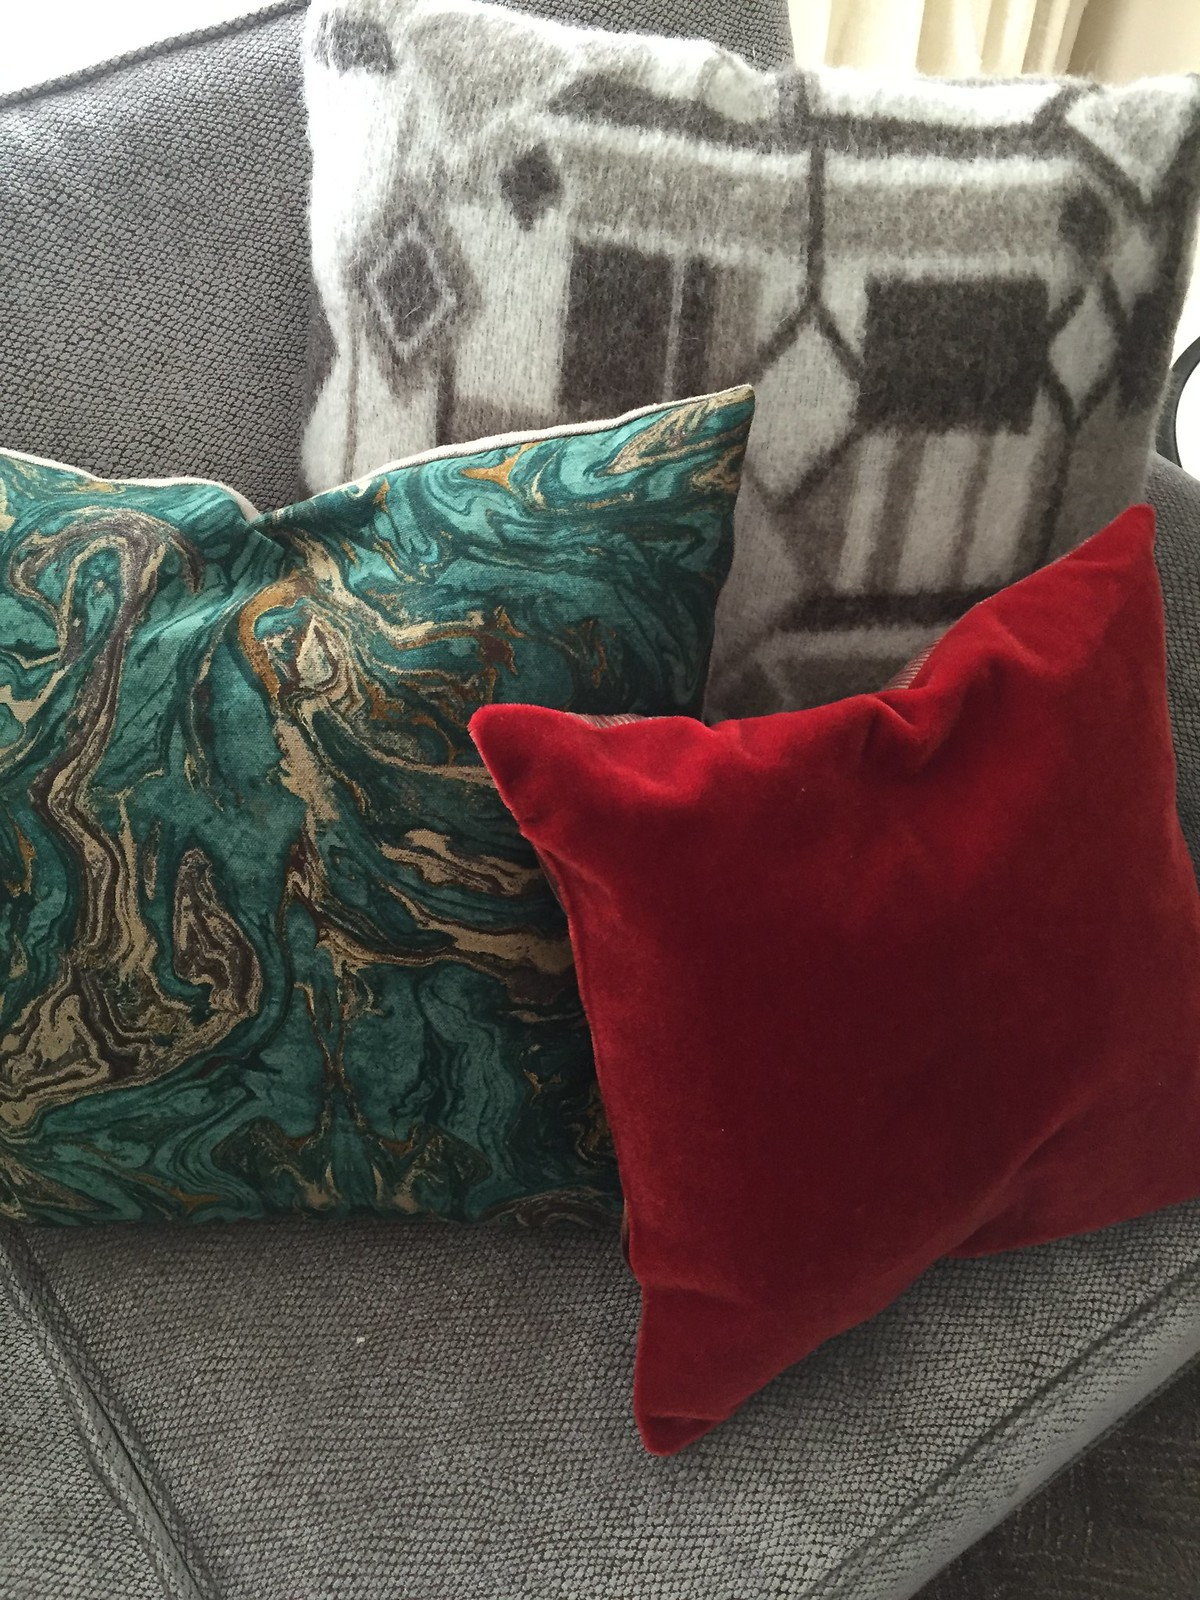 Red velvet cushion mixed in with everyday cushions for a Christmas look